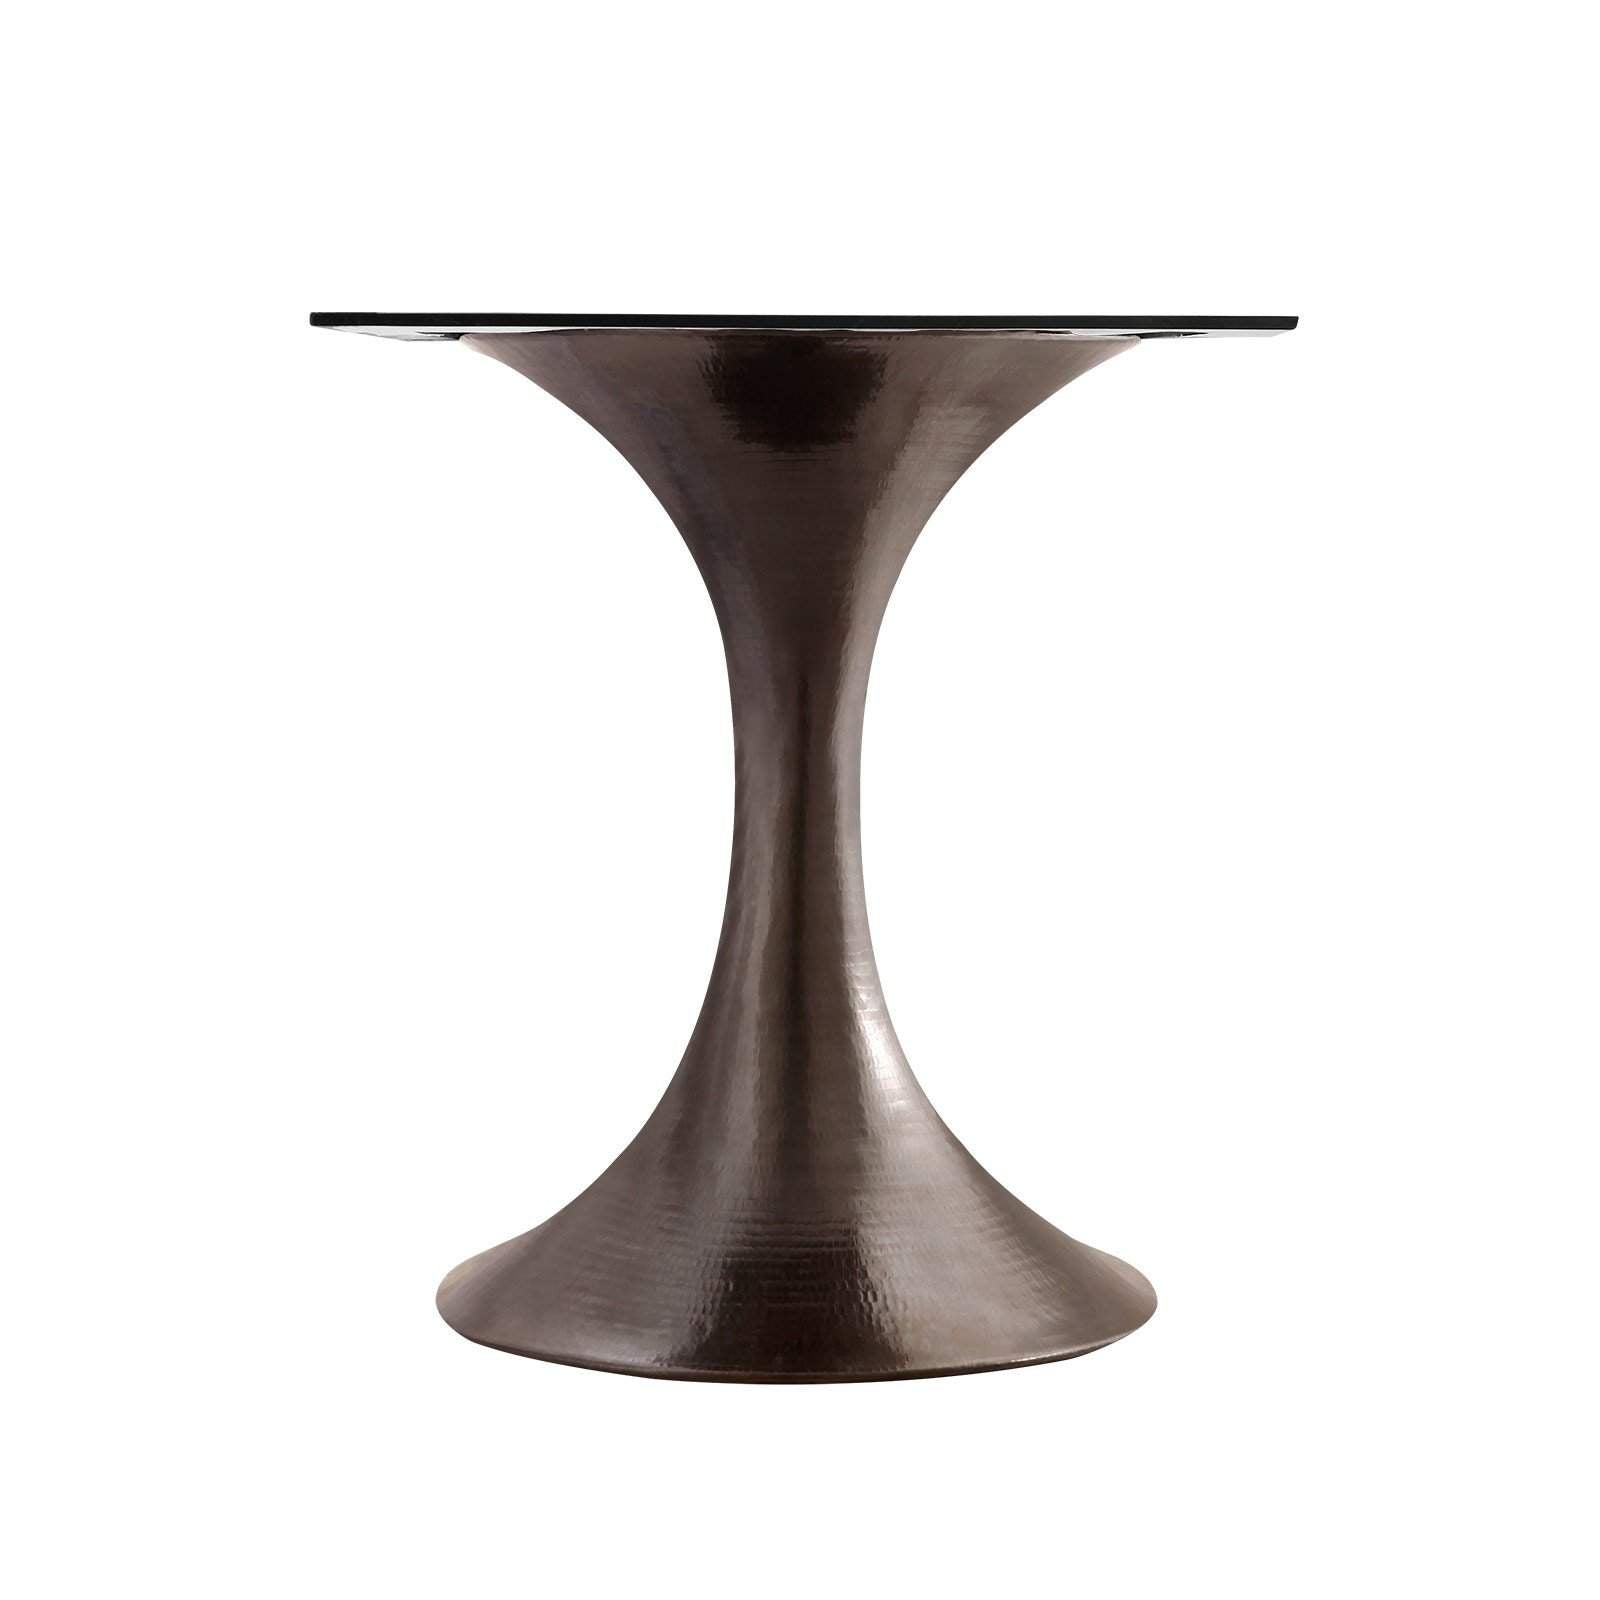 "Bungalow 5 - STOCKHOLM BRONZE DINING TABLE BASE (PAIRS WITH 52"" & 60"" TOP, SOLD SEPARATELY) in BRONZE"